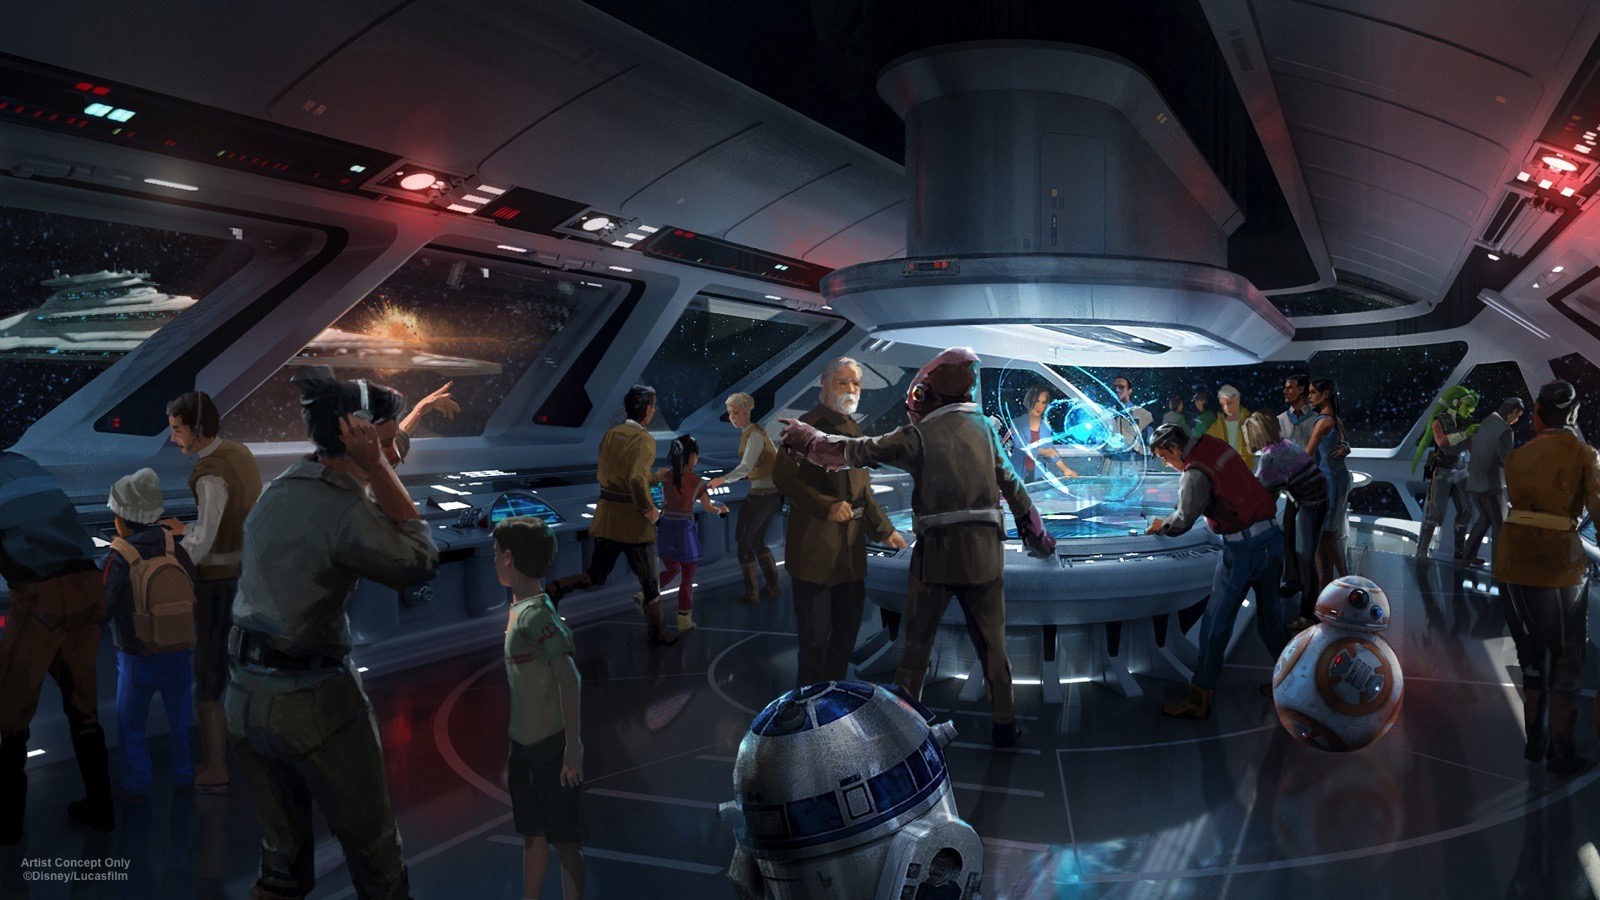 AT D23 EXPO 2017, DISNEY PARKS CHAIRMAN BOB CHAPEK ANNOUNCES NEW STAR WARS-THEMED HOTEL FOR WALT DISNEY WORLD RESORT -- During D23 Expo 2017, Walt Disney Parks & Resorts Chairman Bob Chapek announced plans to create the most experiential concept ever in an immersive Star Wars-themed hotel at Walt Disney World Resort. Dedicated entirely to the galaxy of Star Wars, it will be a one-of-a-kind experience where a luxury resort meets a multi-day adventure in a galaxy far, far away.